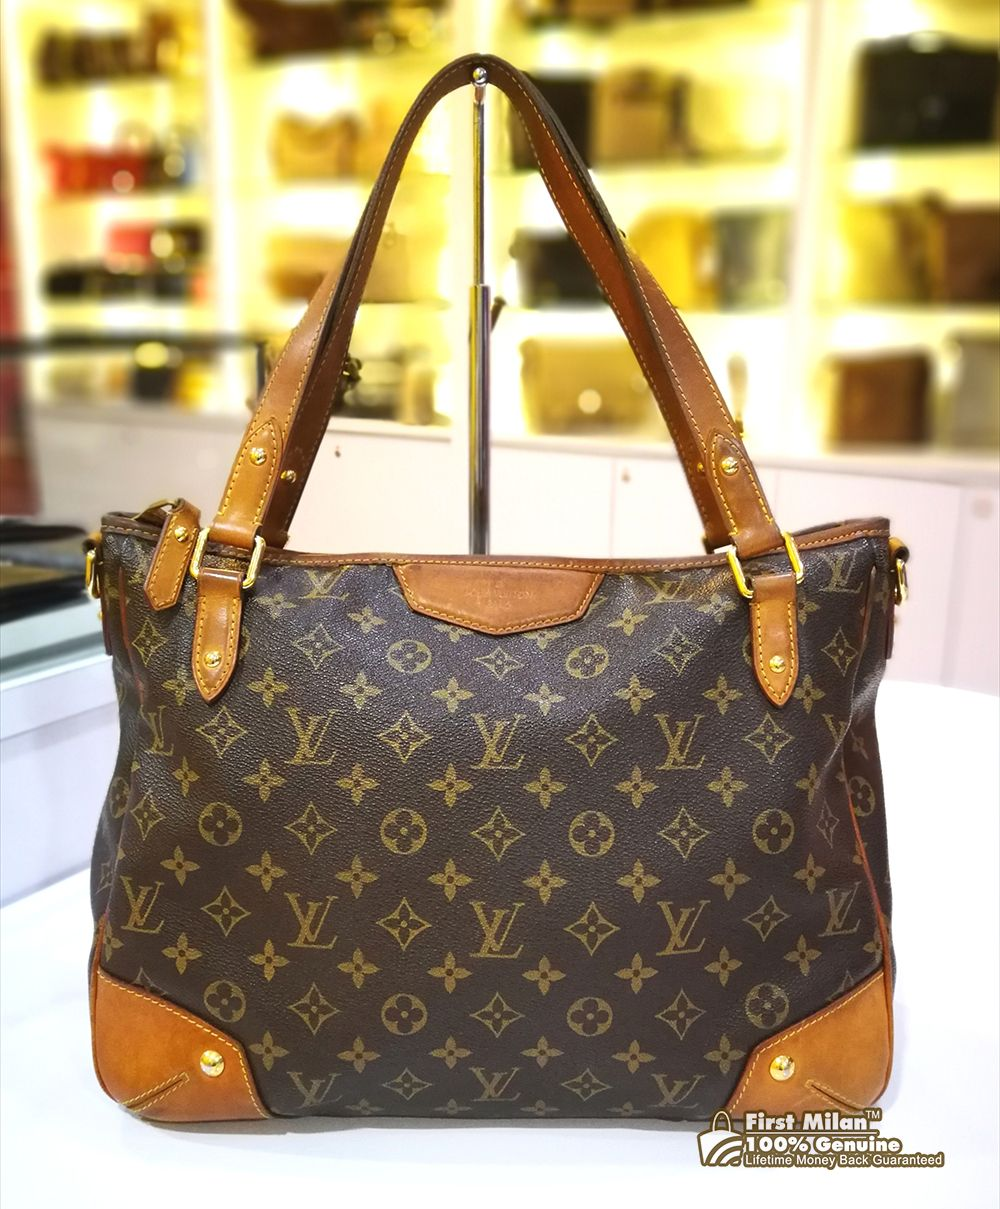 LOUIS VUITTON Monogram Canvas Estrela MM RM LOUIS VUITTON in